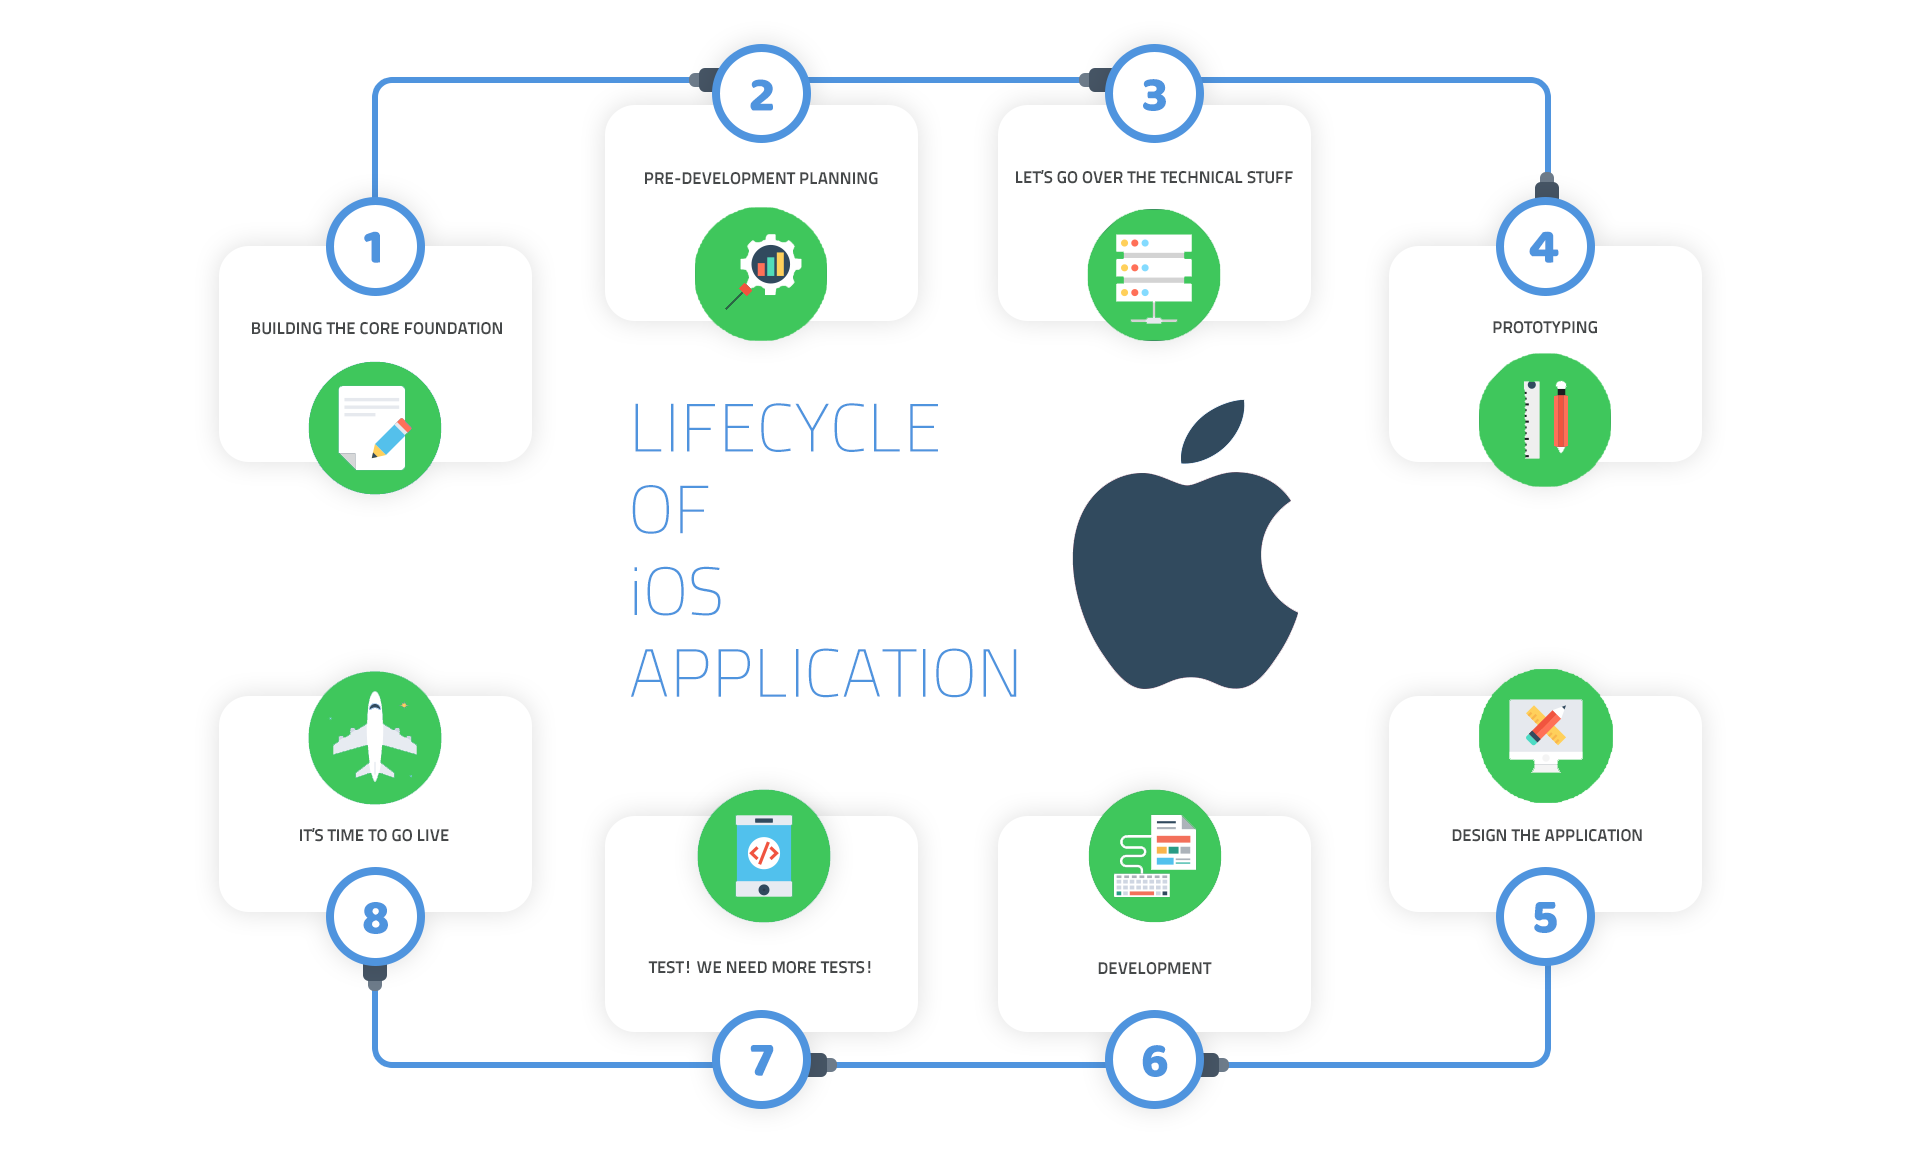 lifecycle-of-ios